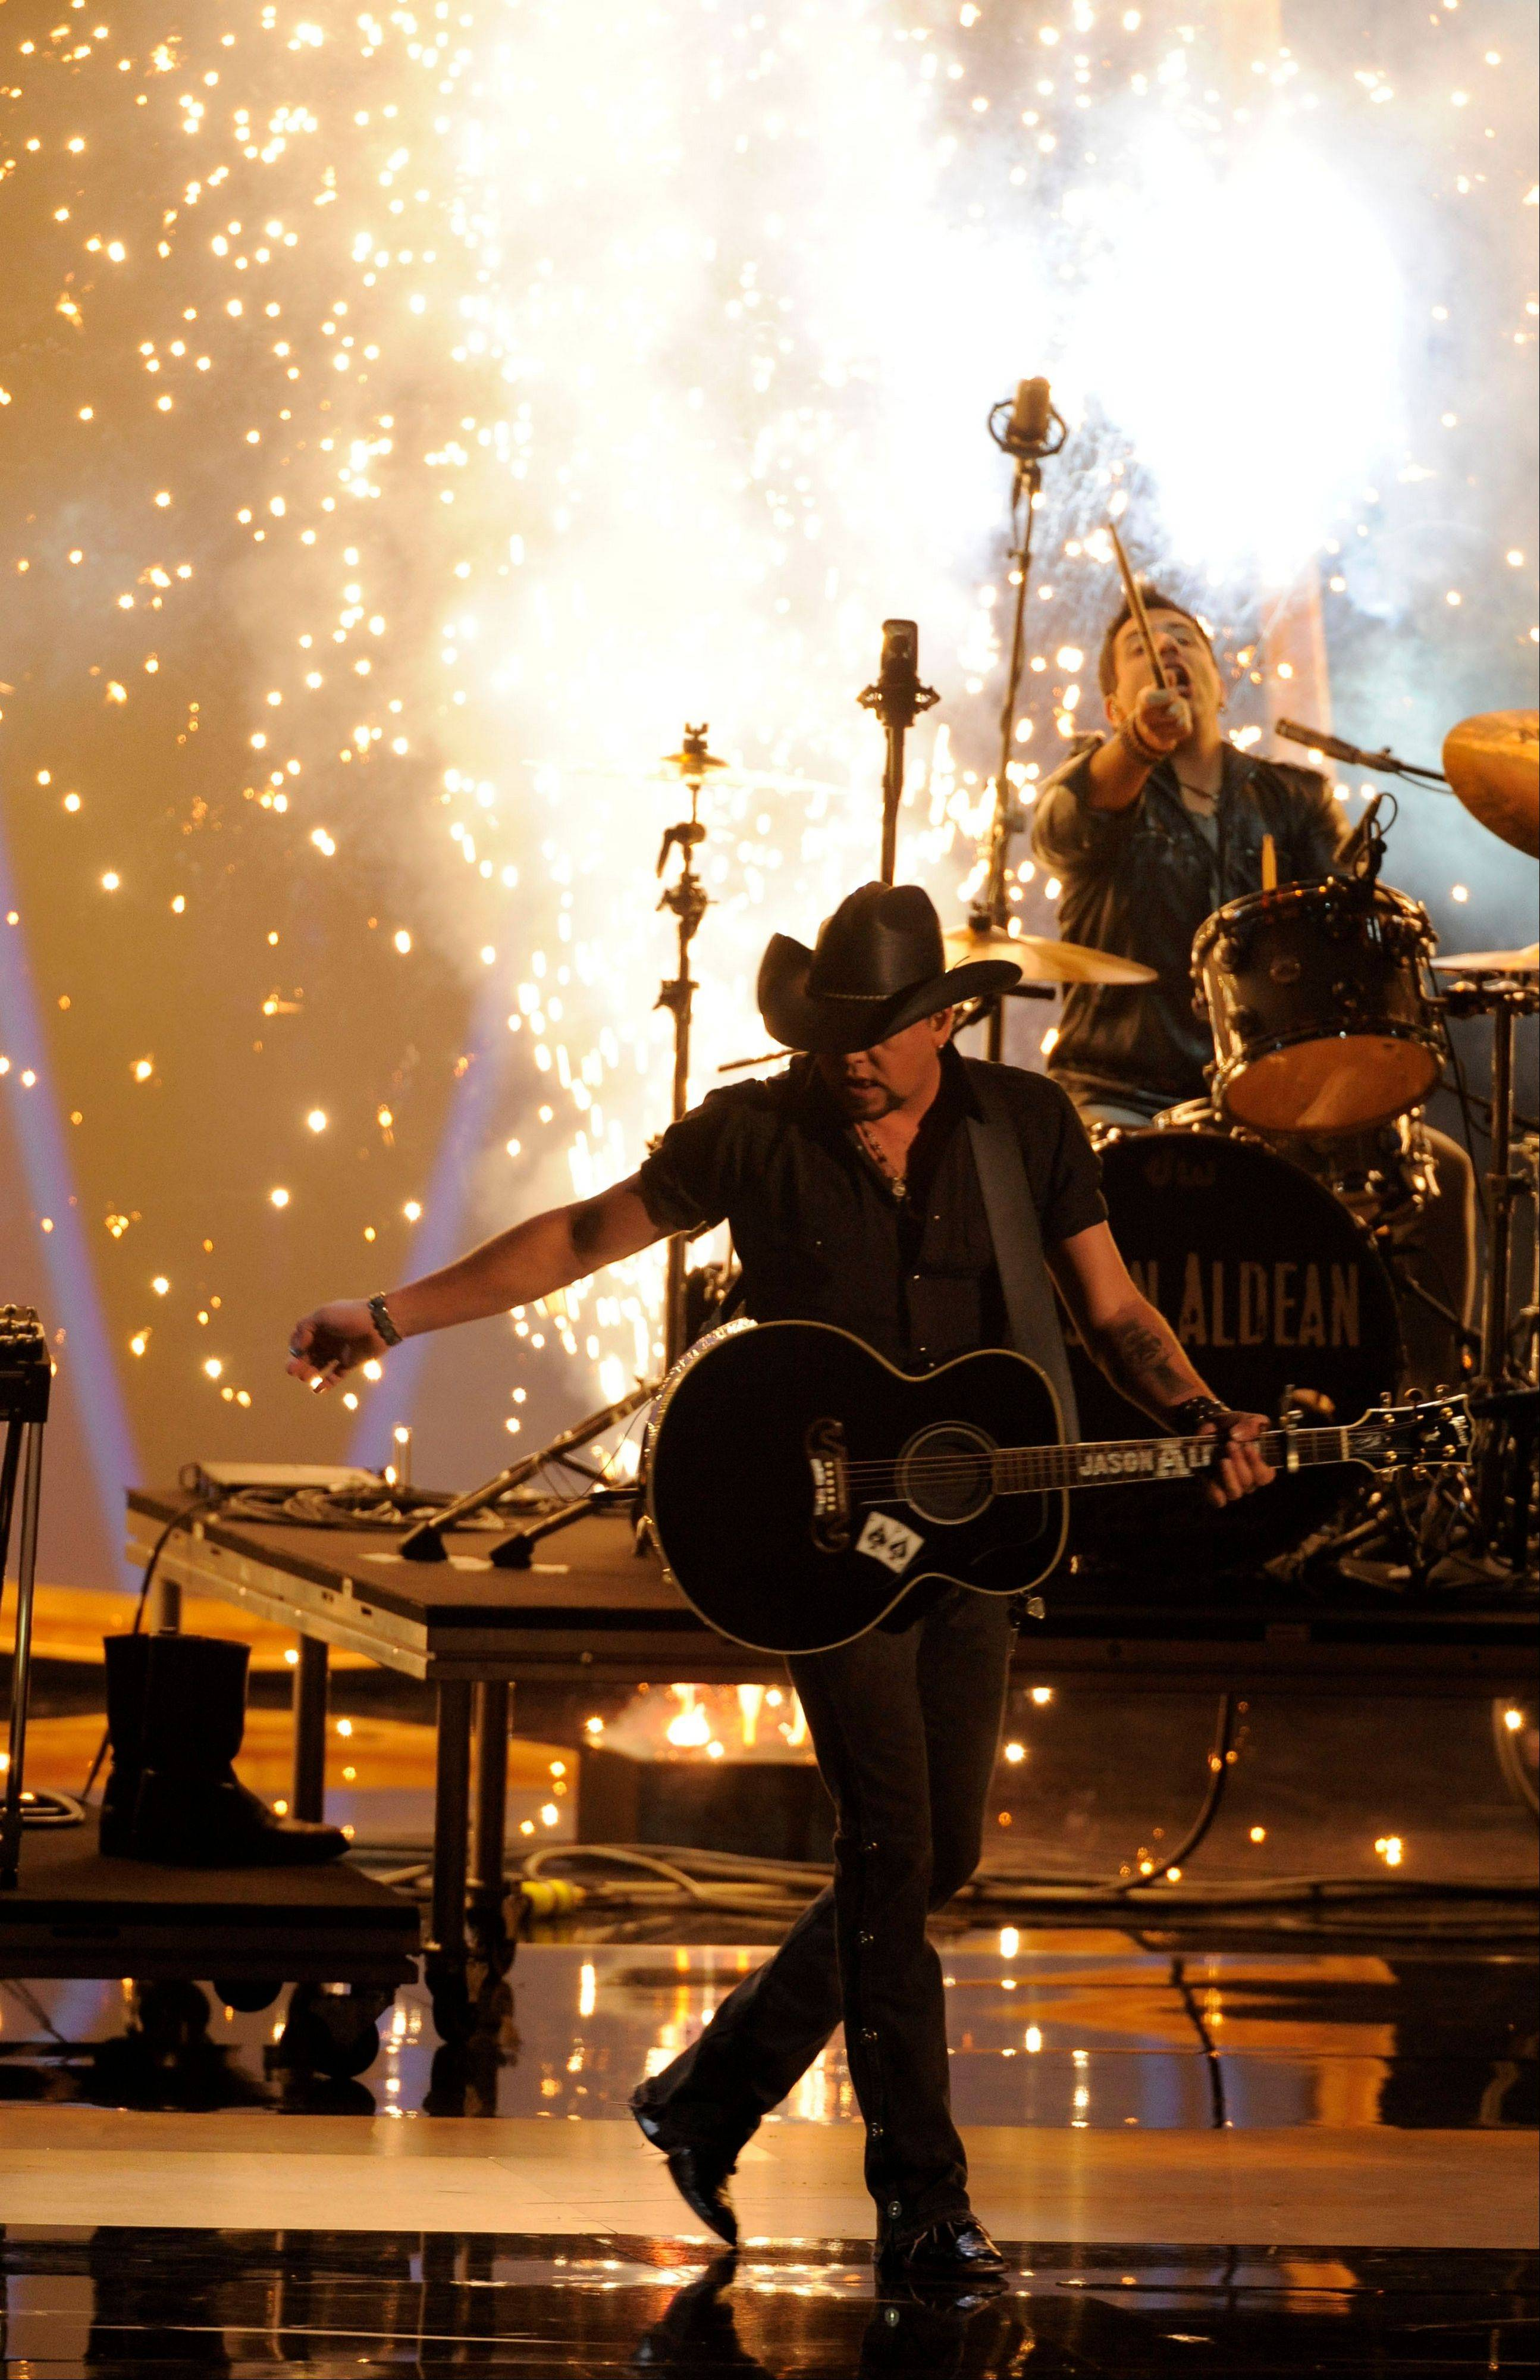 Jason Aldean performs at the People's Choice Awards at the Nokia Theatre on Wednesday Jan. 9, 2013, in Los Angeles.